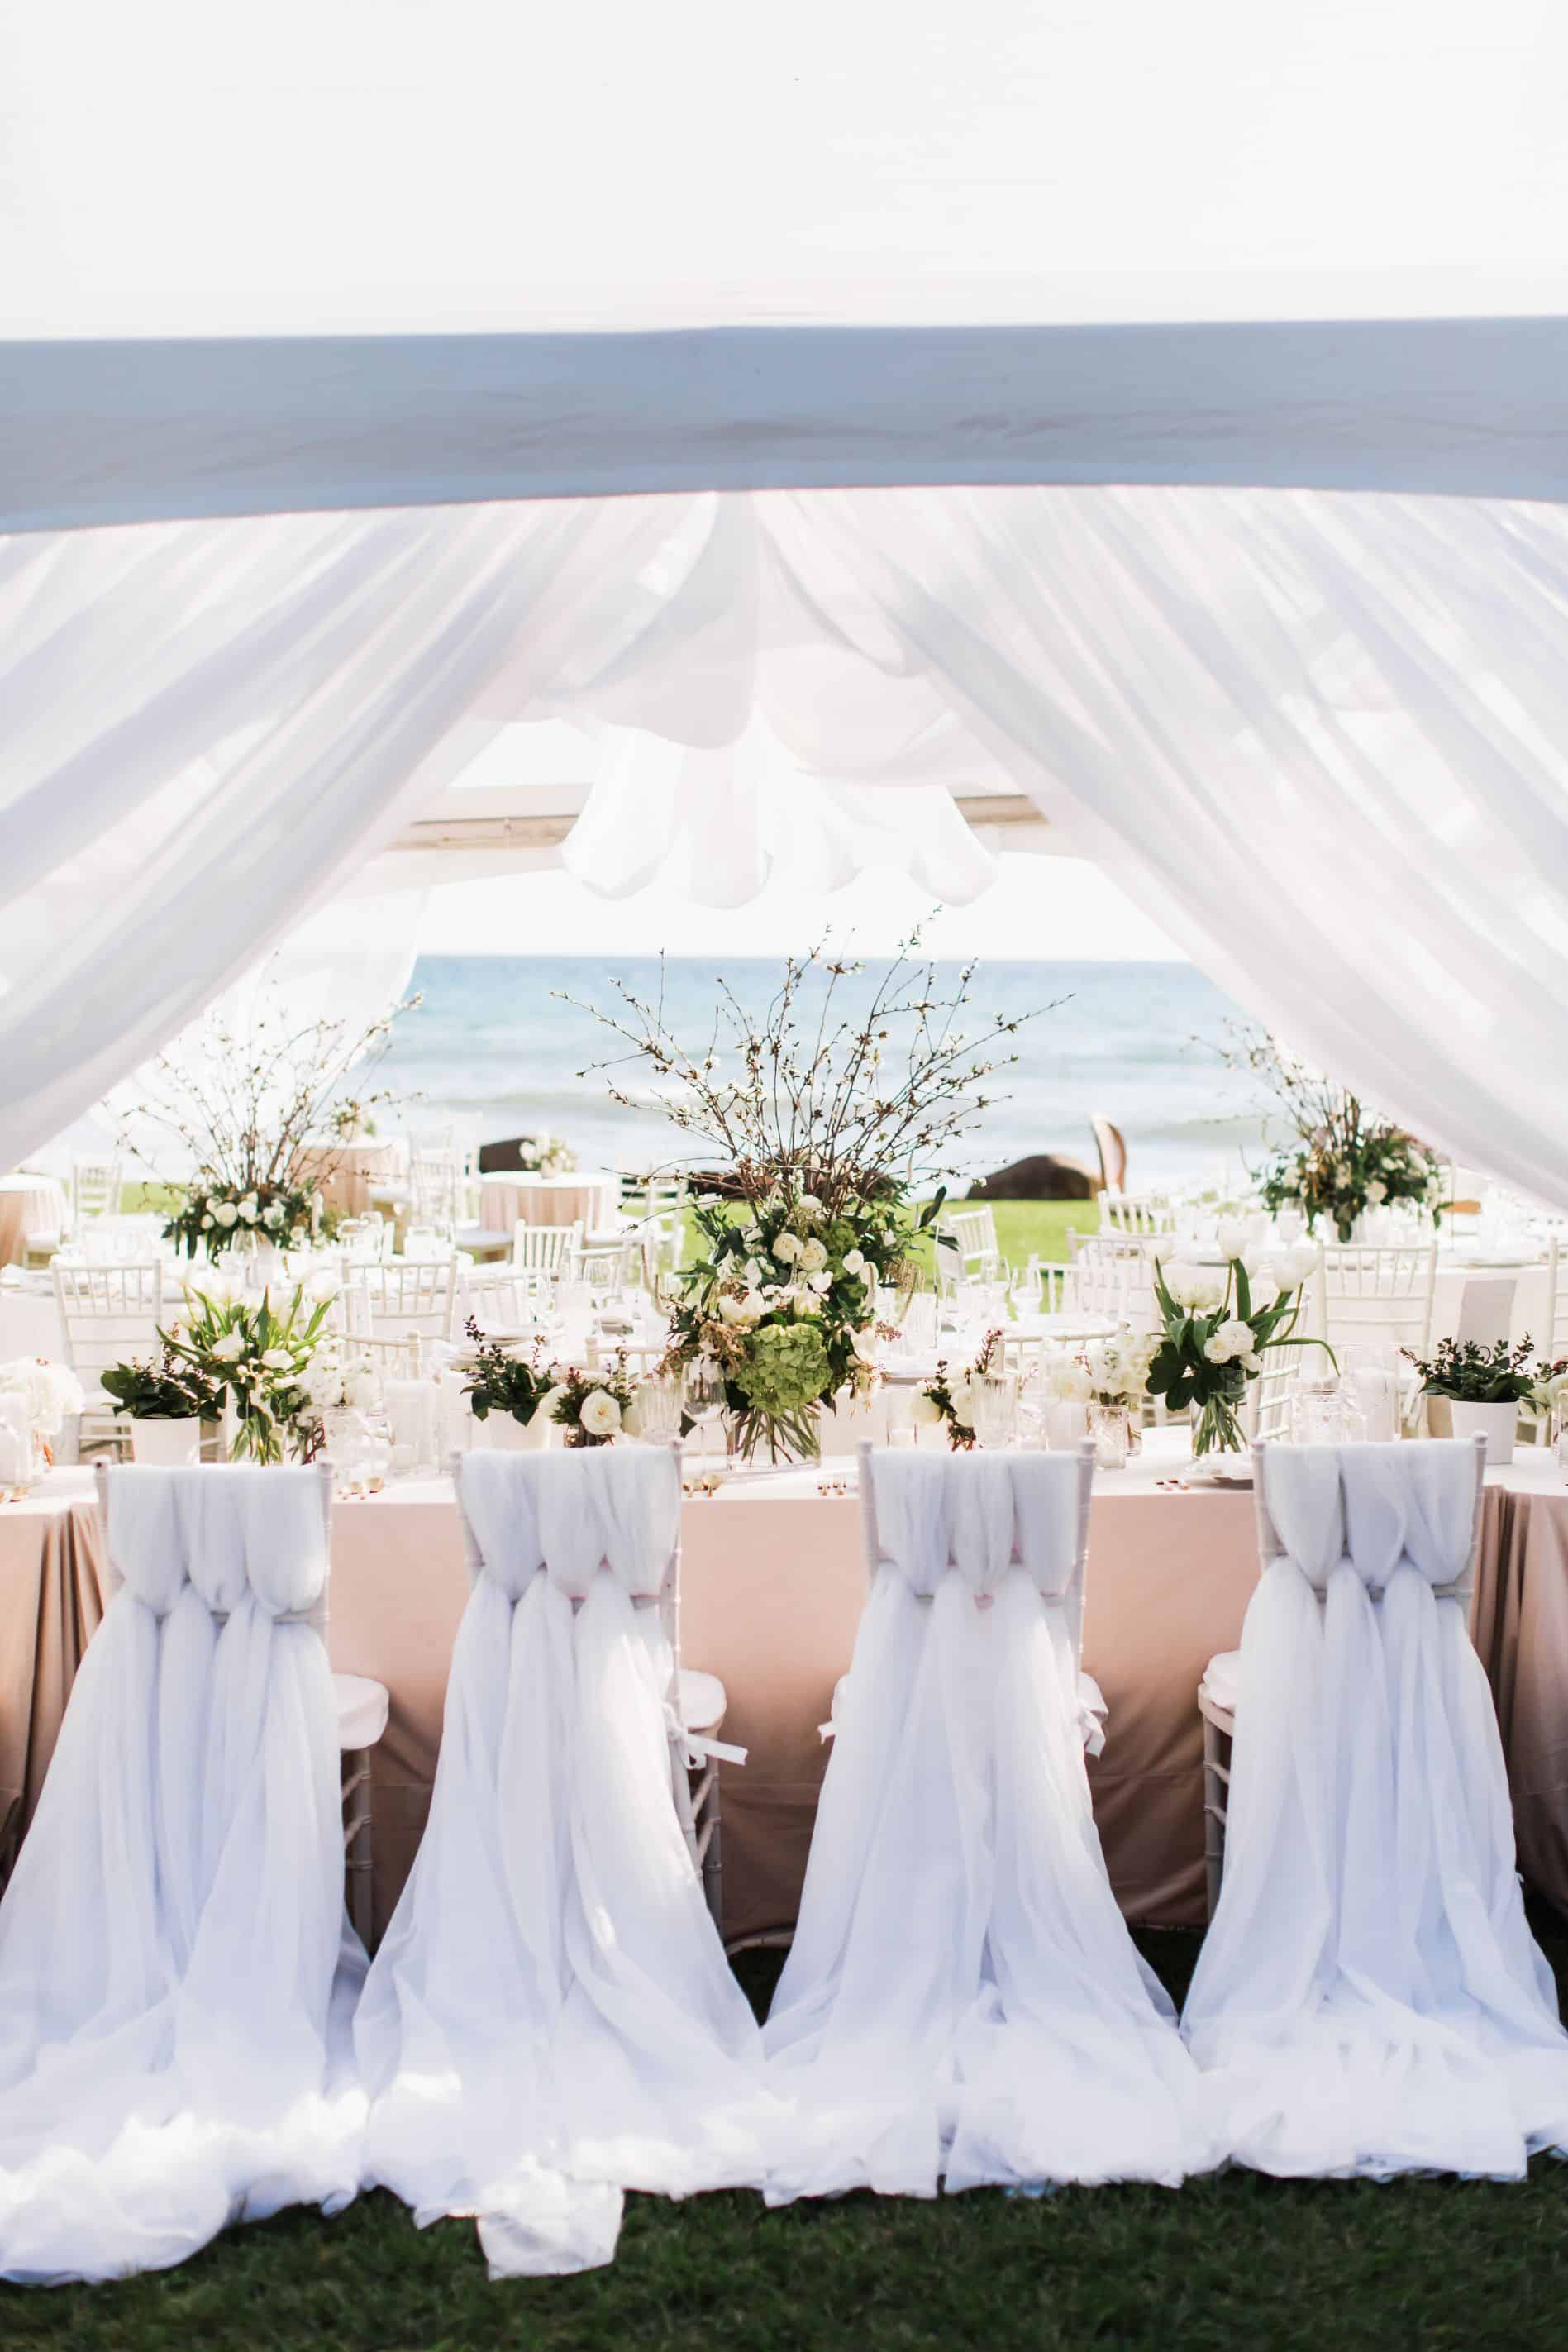 White wedding tent overlooking ocean | Maui's Angels